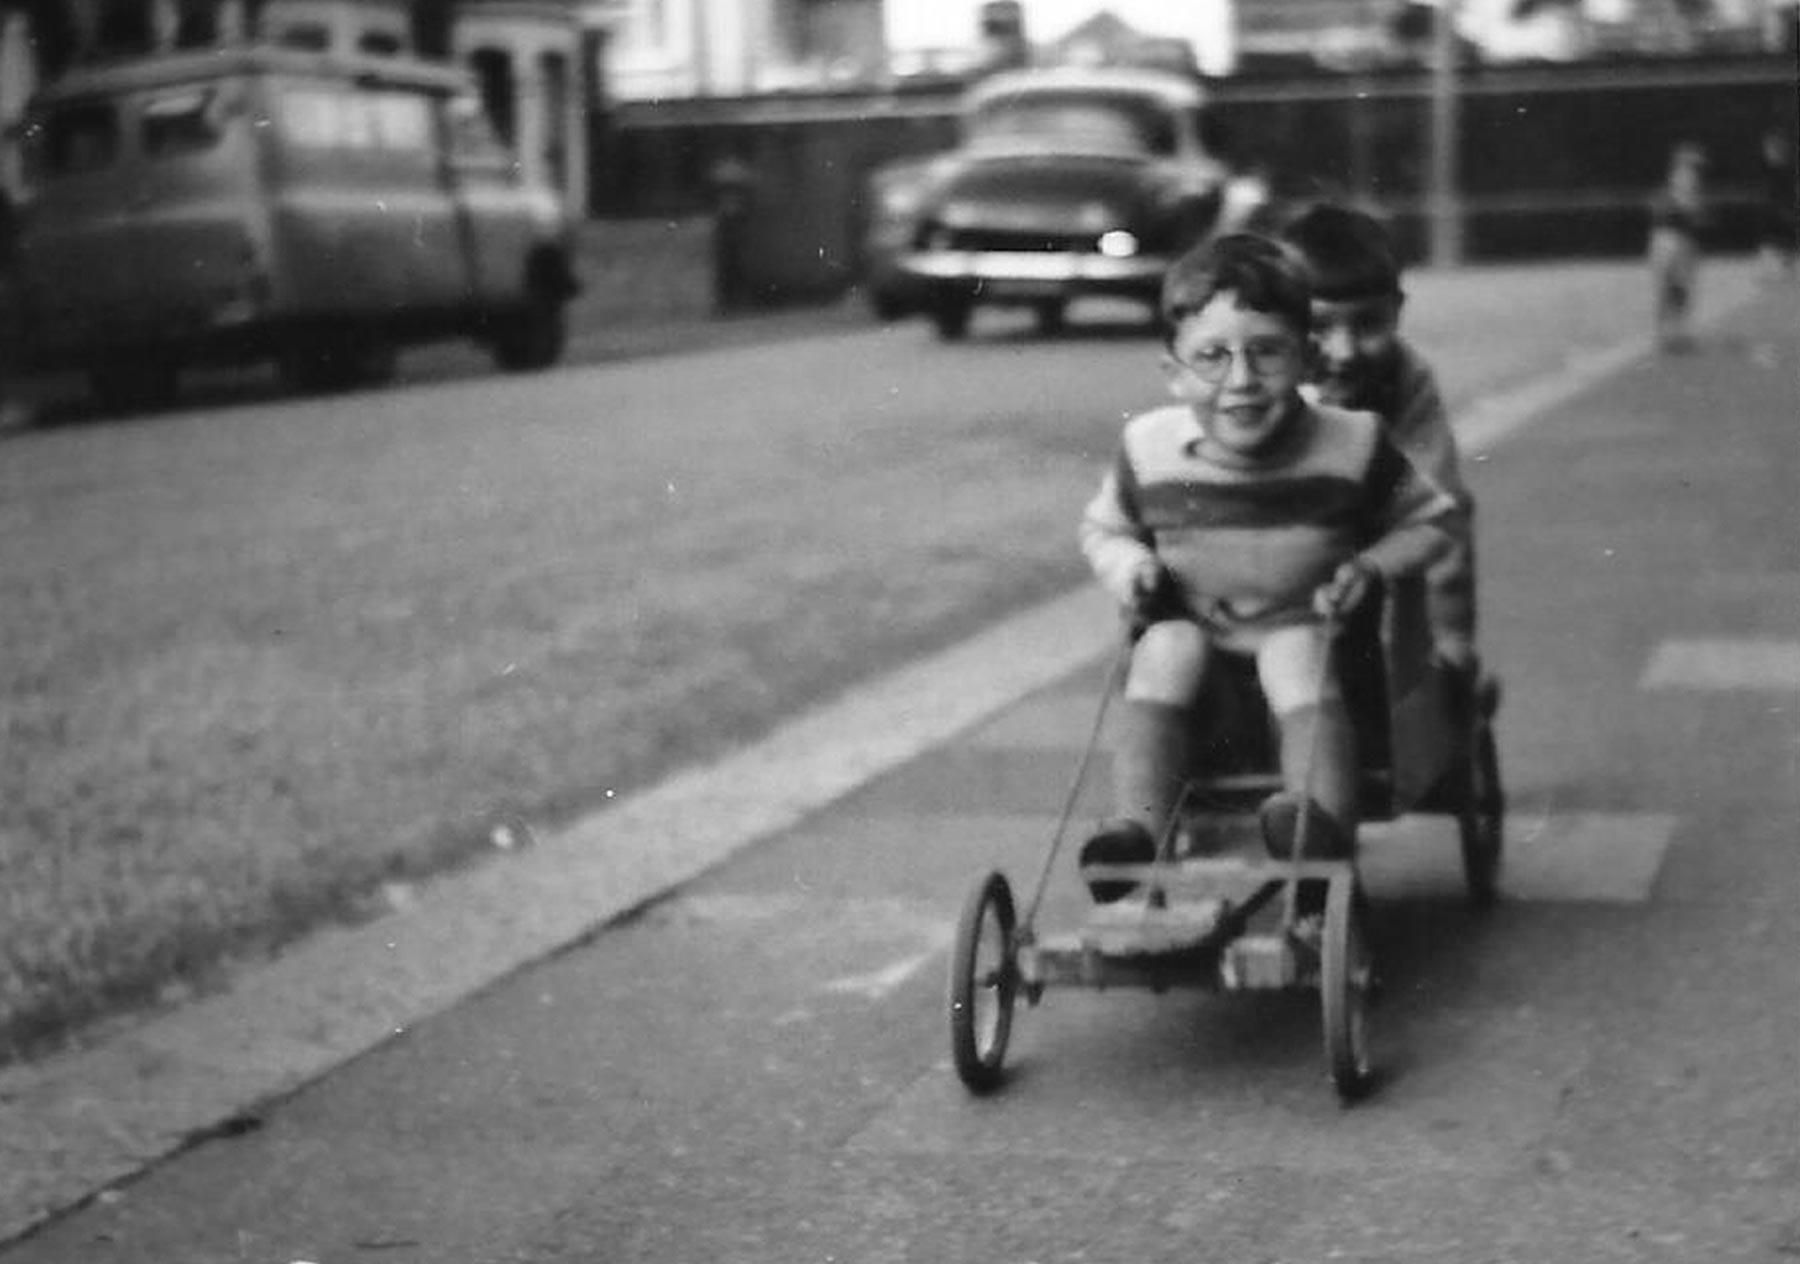 Old photo of children riding a go cart in the street